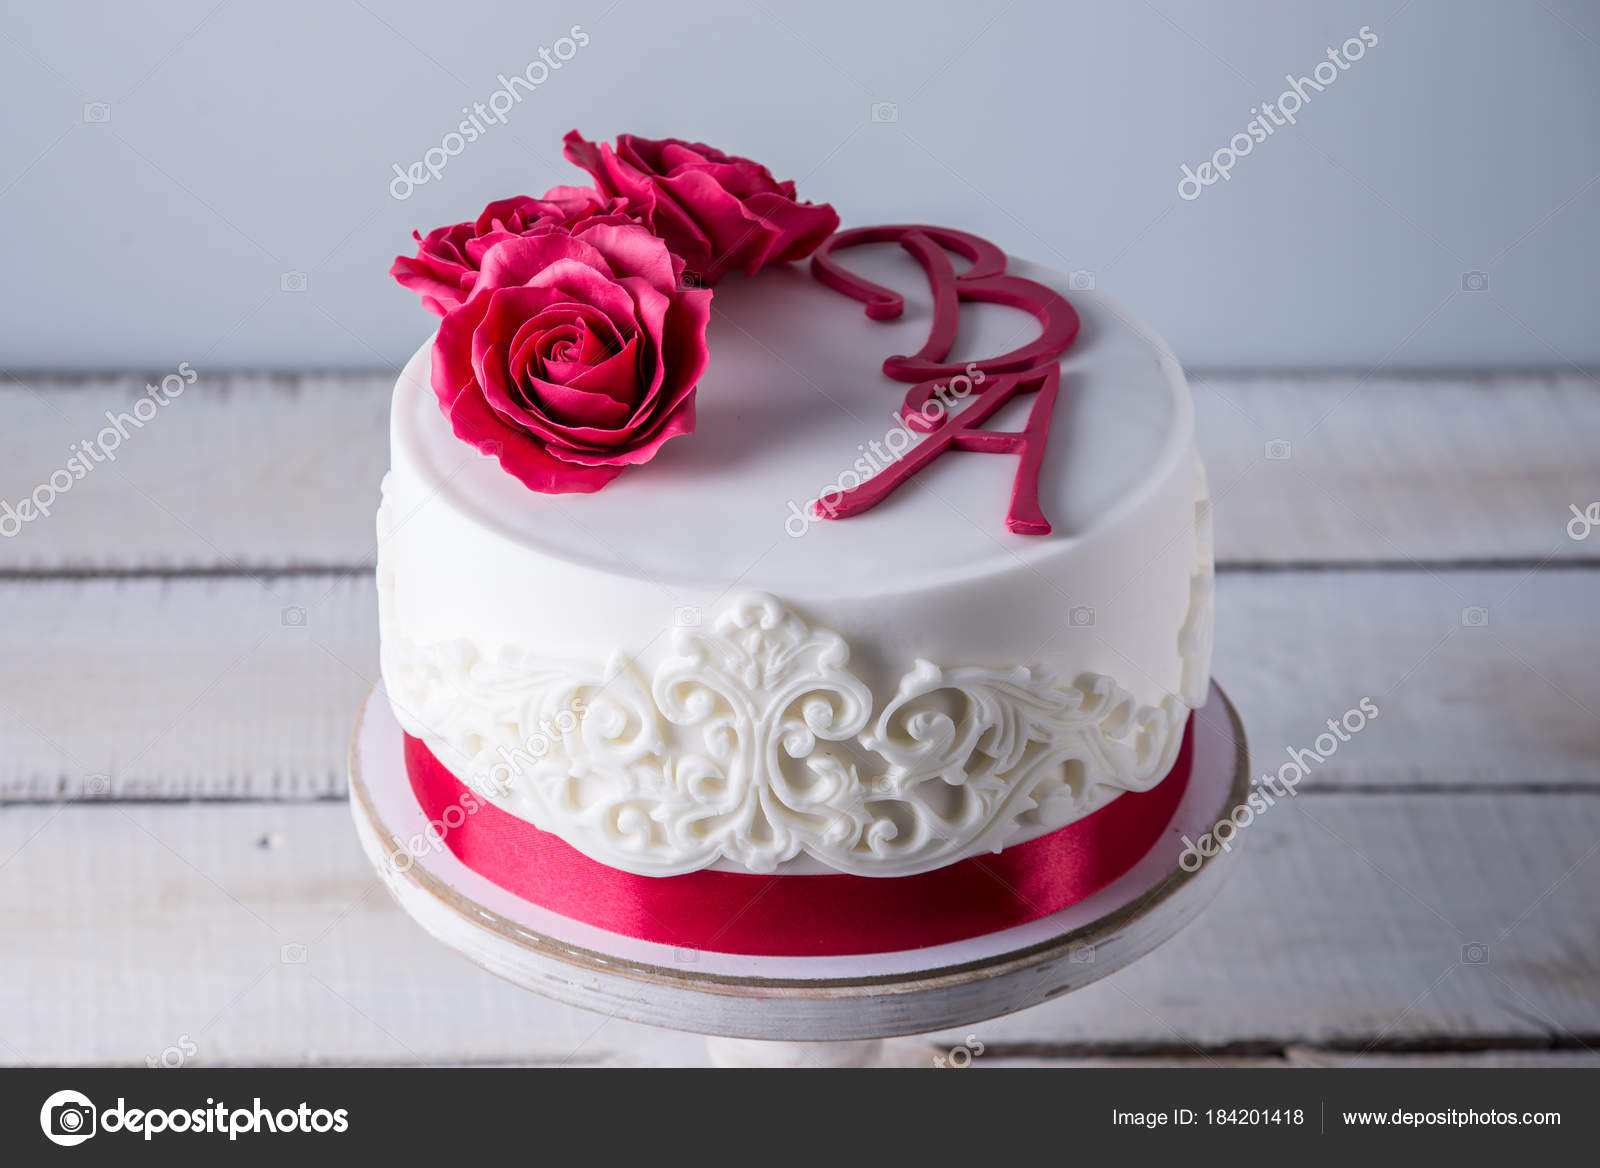 Beautiful White Wedding Cake Decorated With Flowers Red Roses And Ribbon Concept Of Elegant Holiday Desserts Stock Image